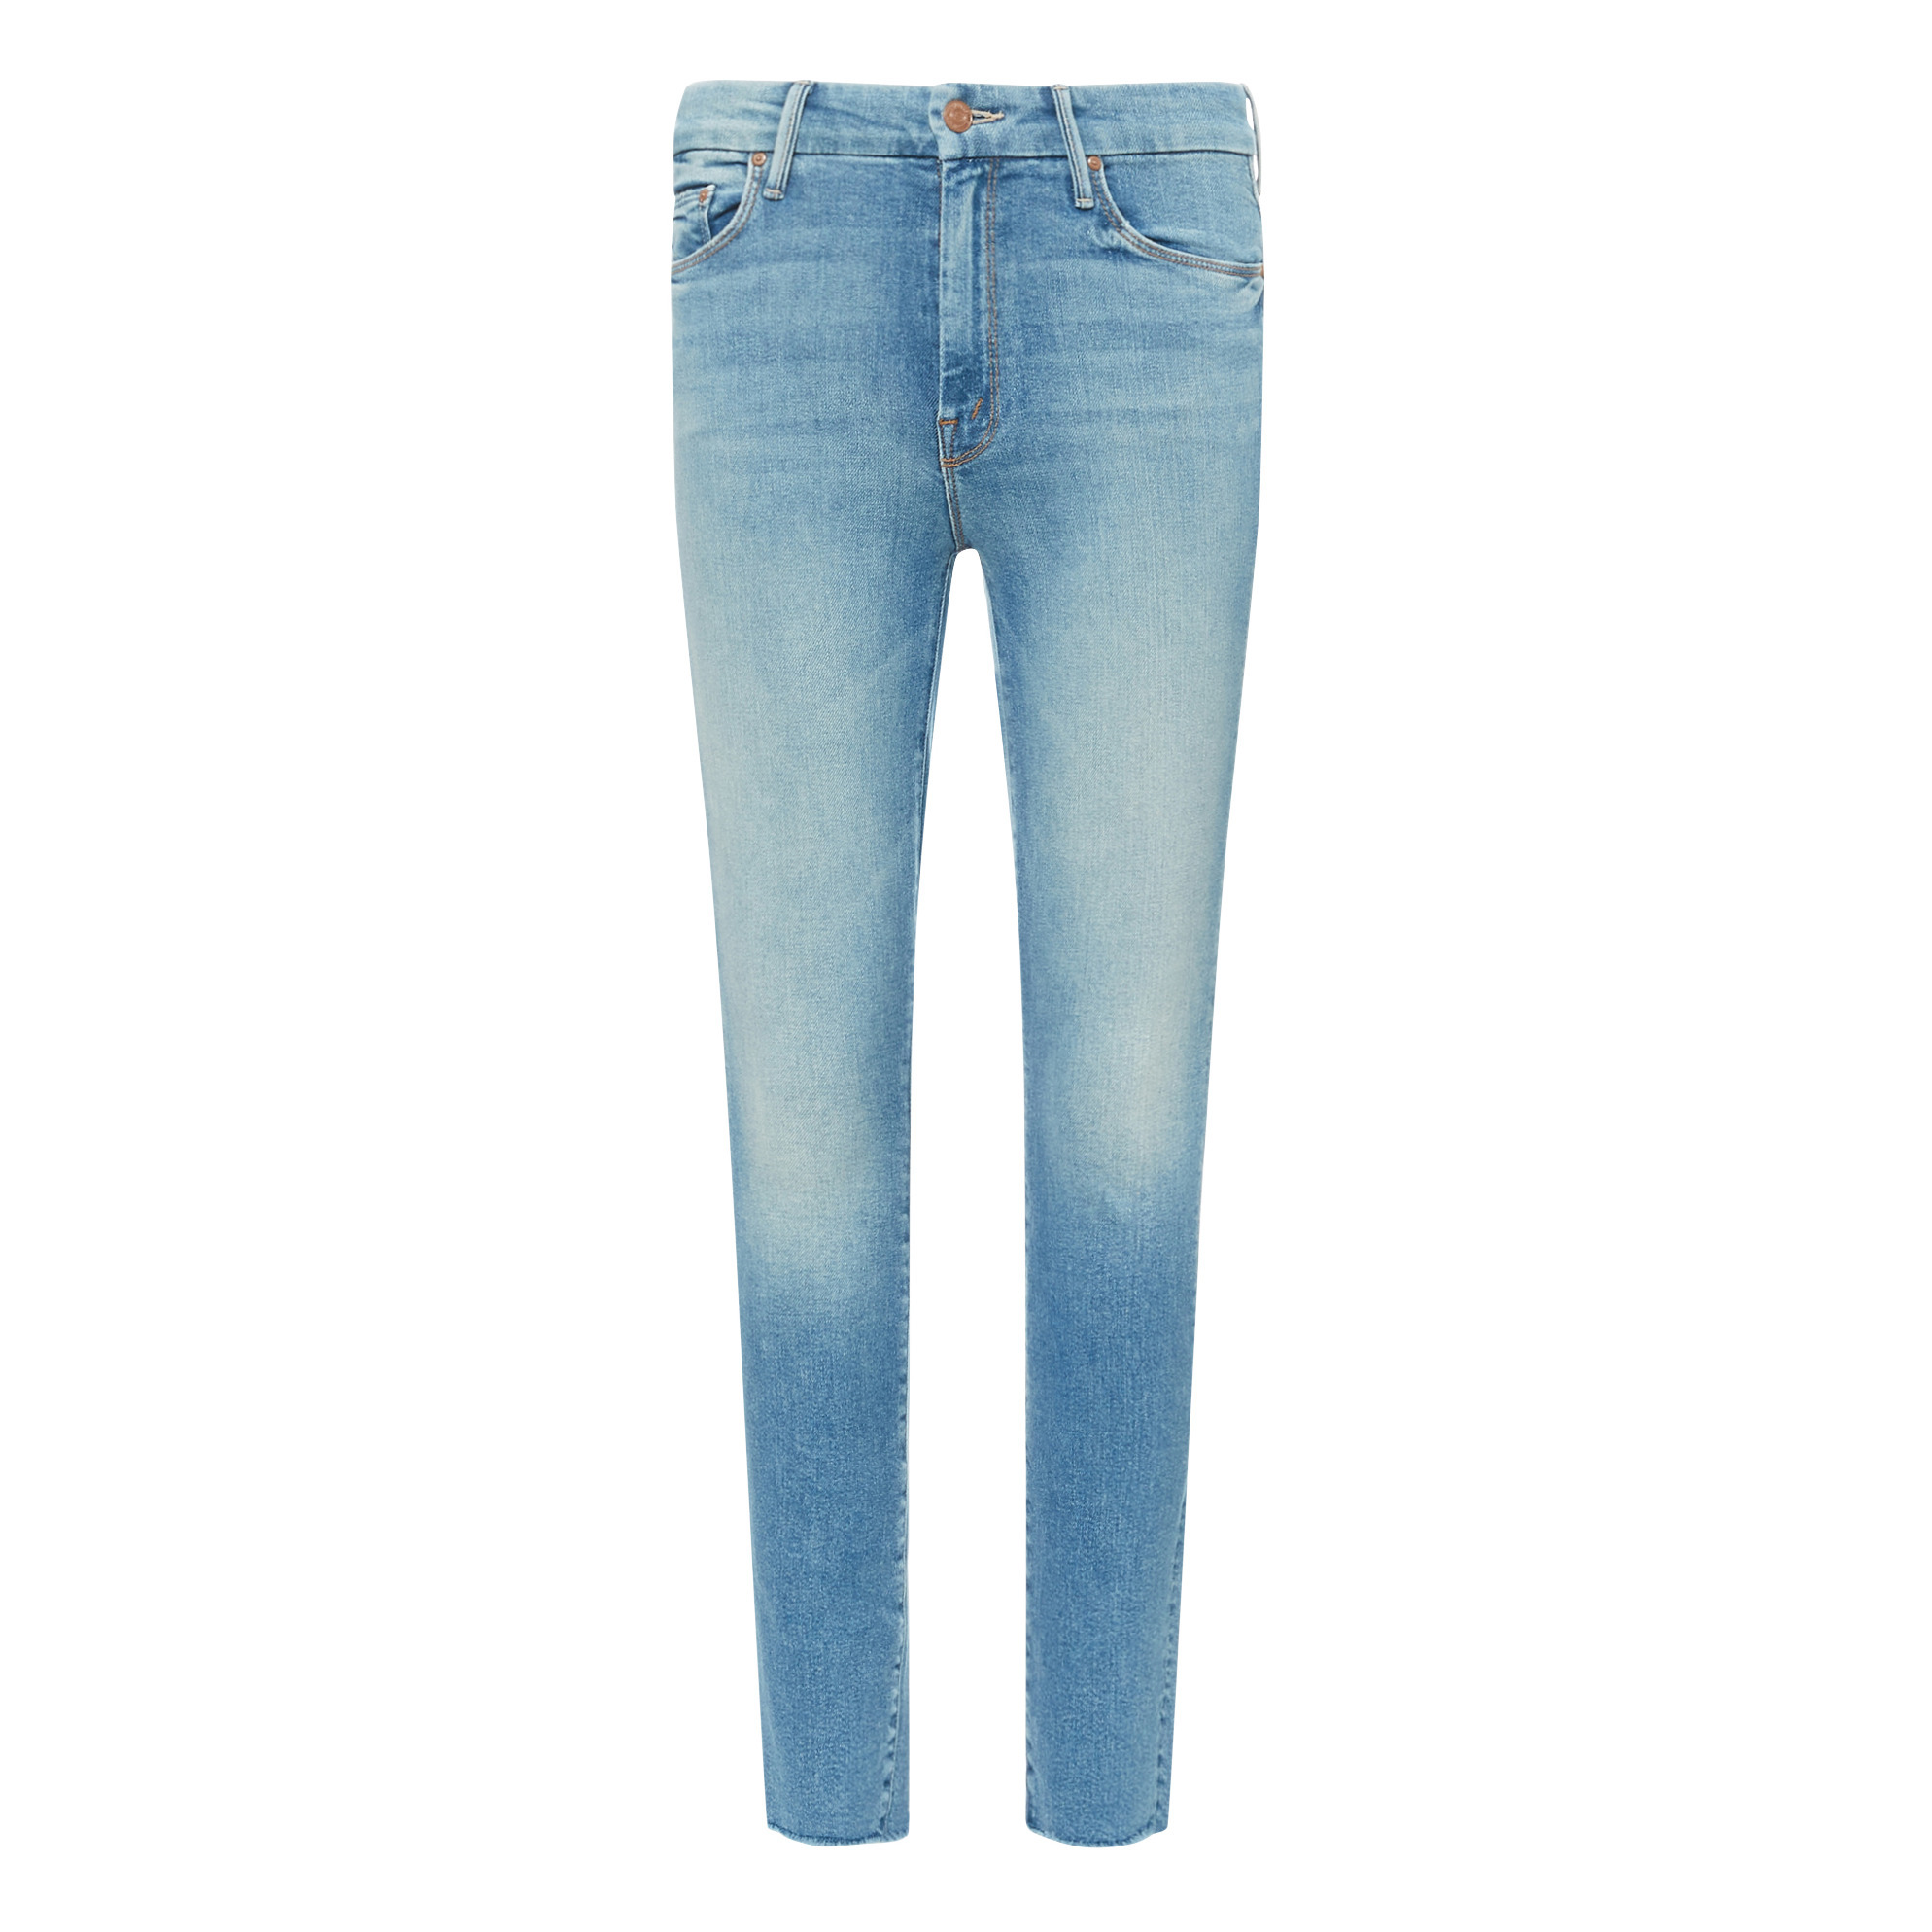 Jeans Skinny High Waisted Looker Ankle Fray